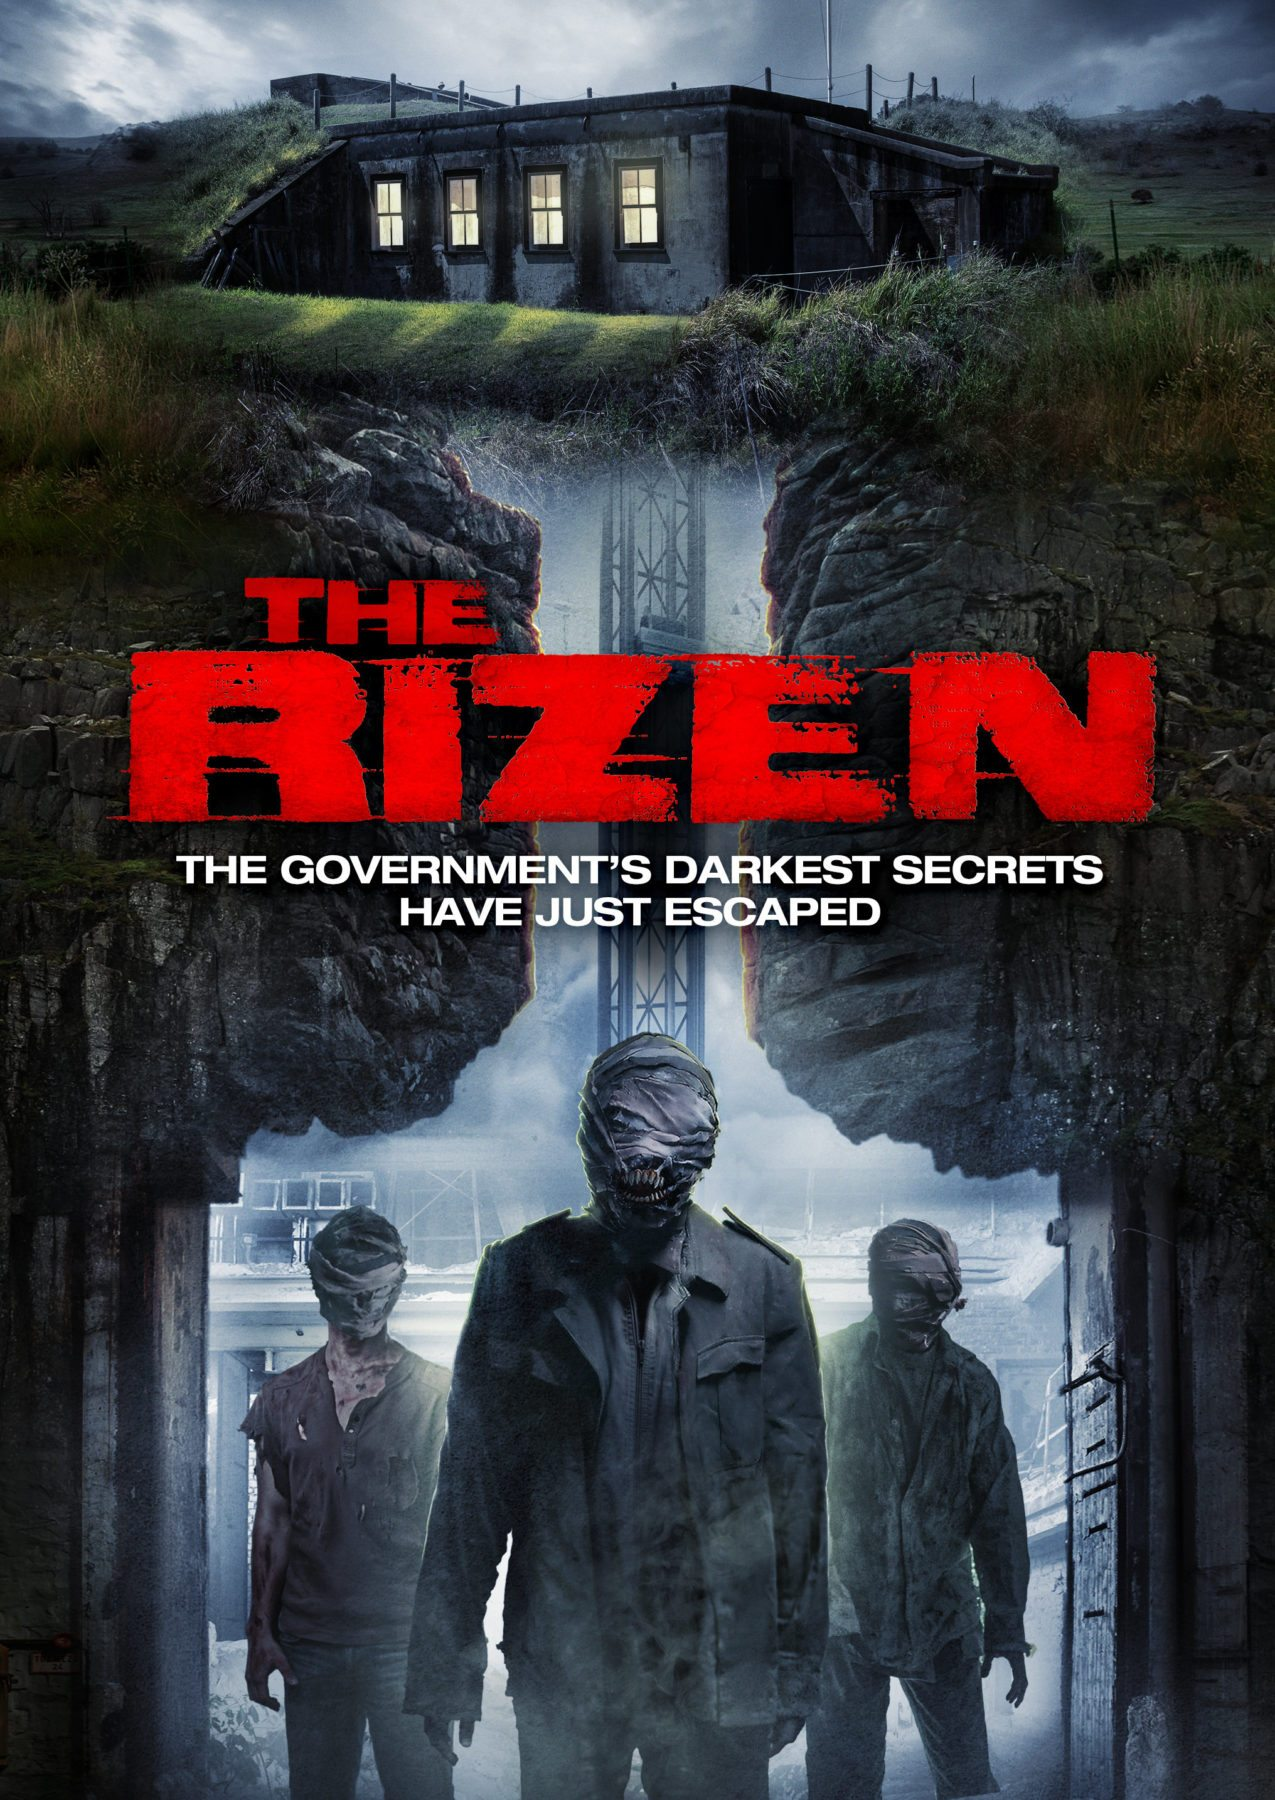 Movie Review - The Rizen (2017)